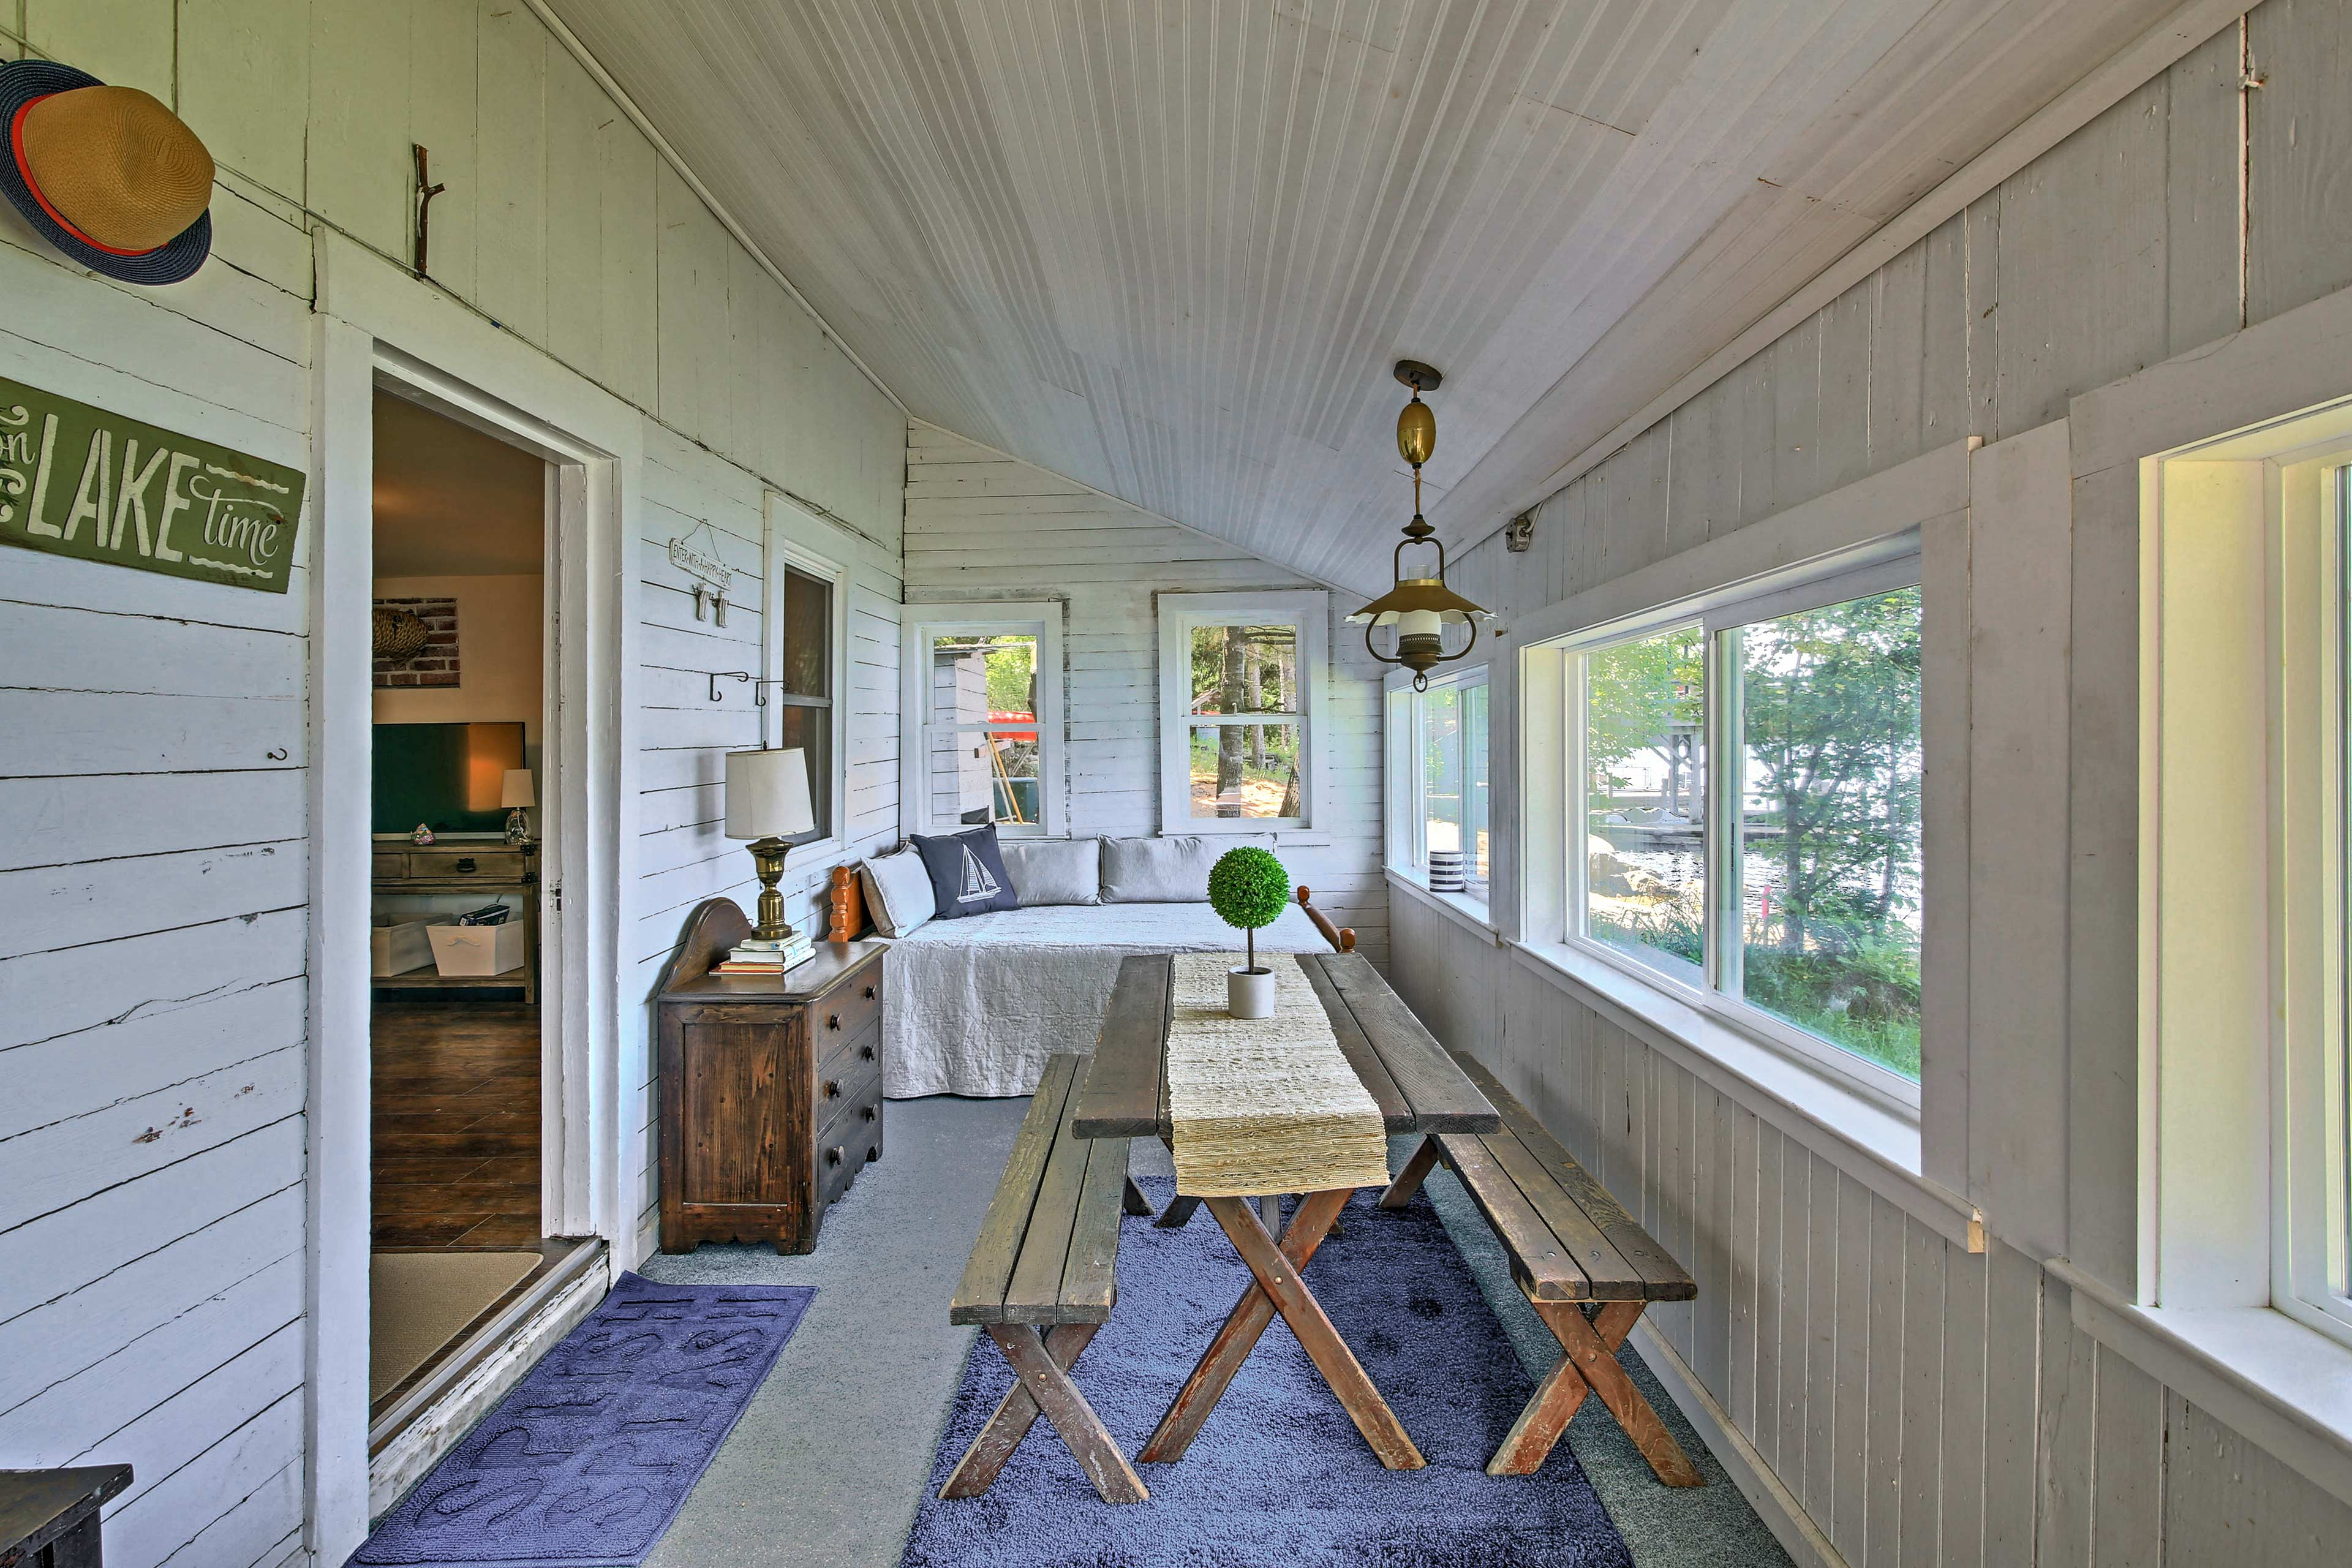 Step onto the sleeping porch for amazing views!